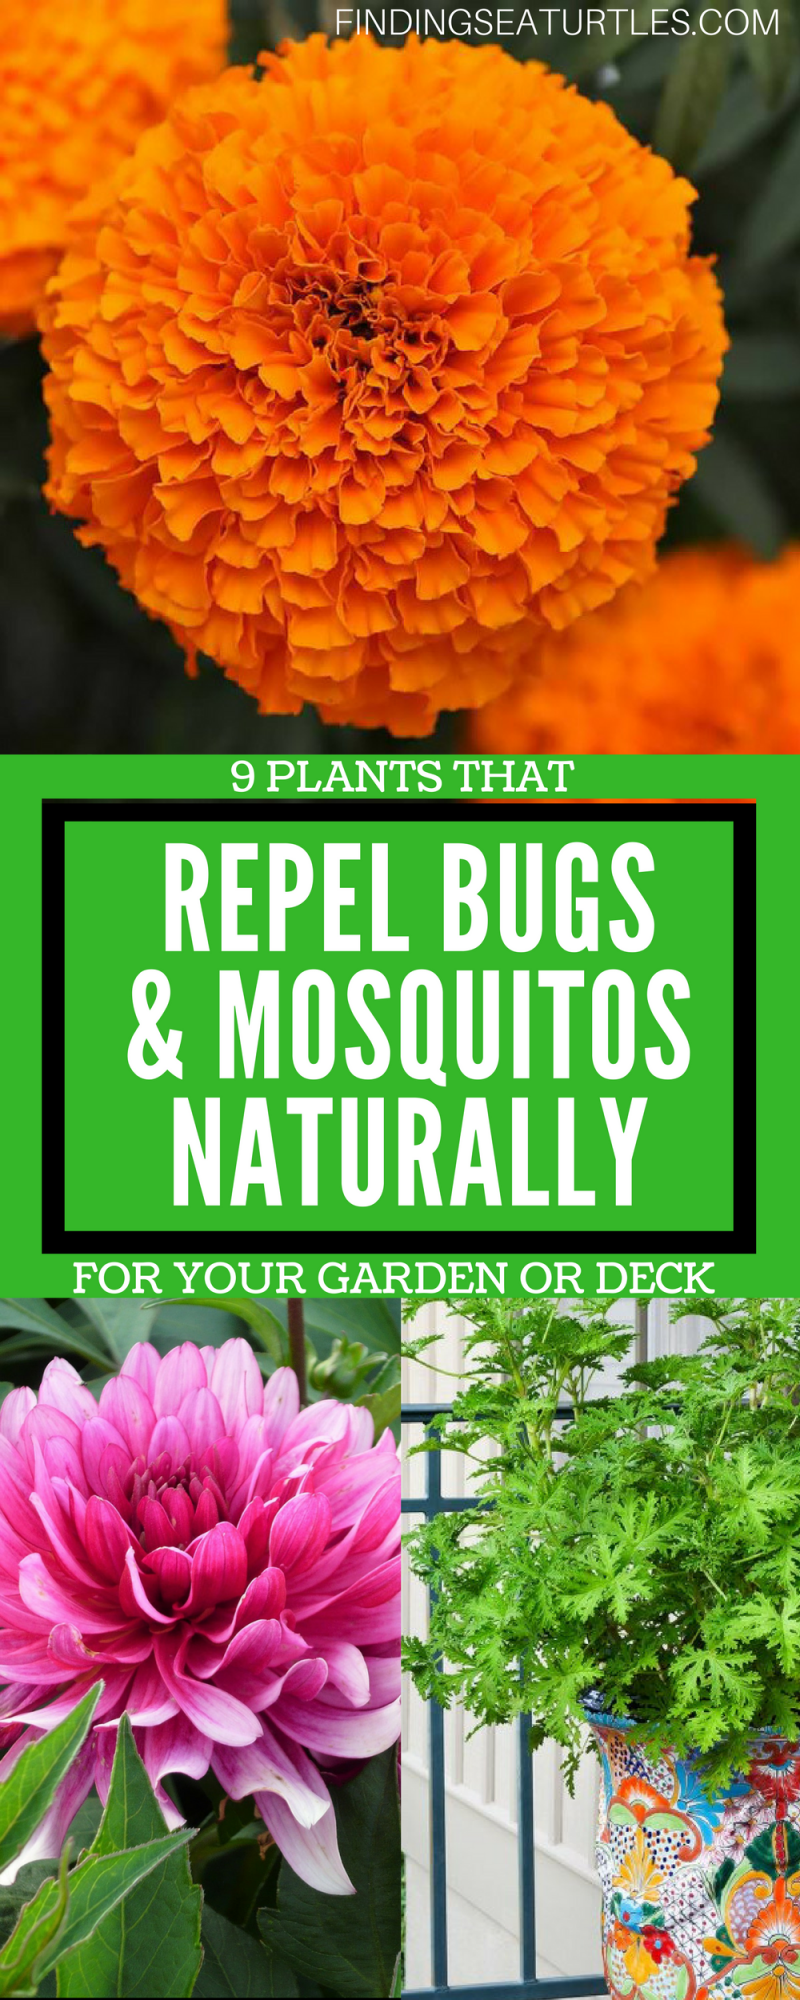 9 Plants That Repel Bugs Naturally Whiteflowerfarm Organic Natural Bugrepellingplants Lavender Gardening